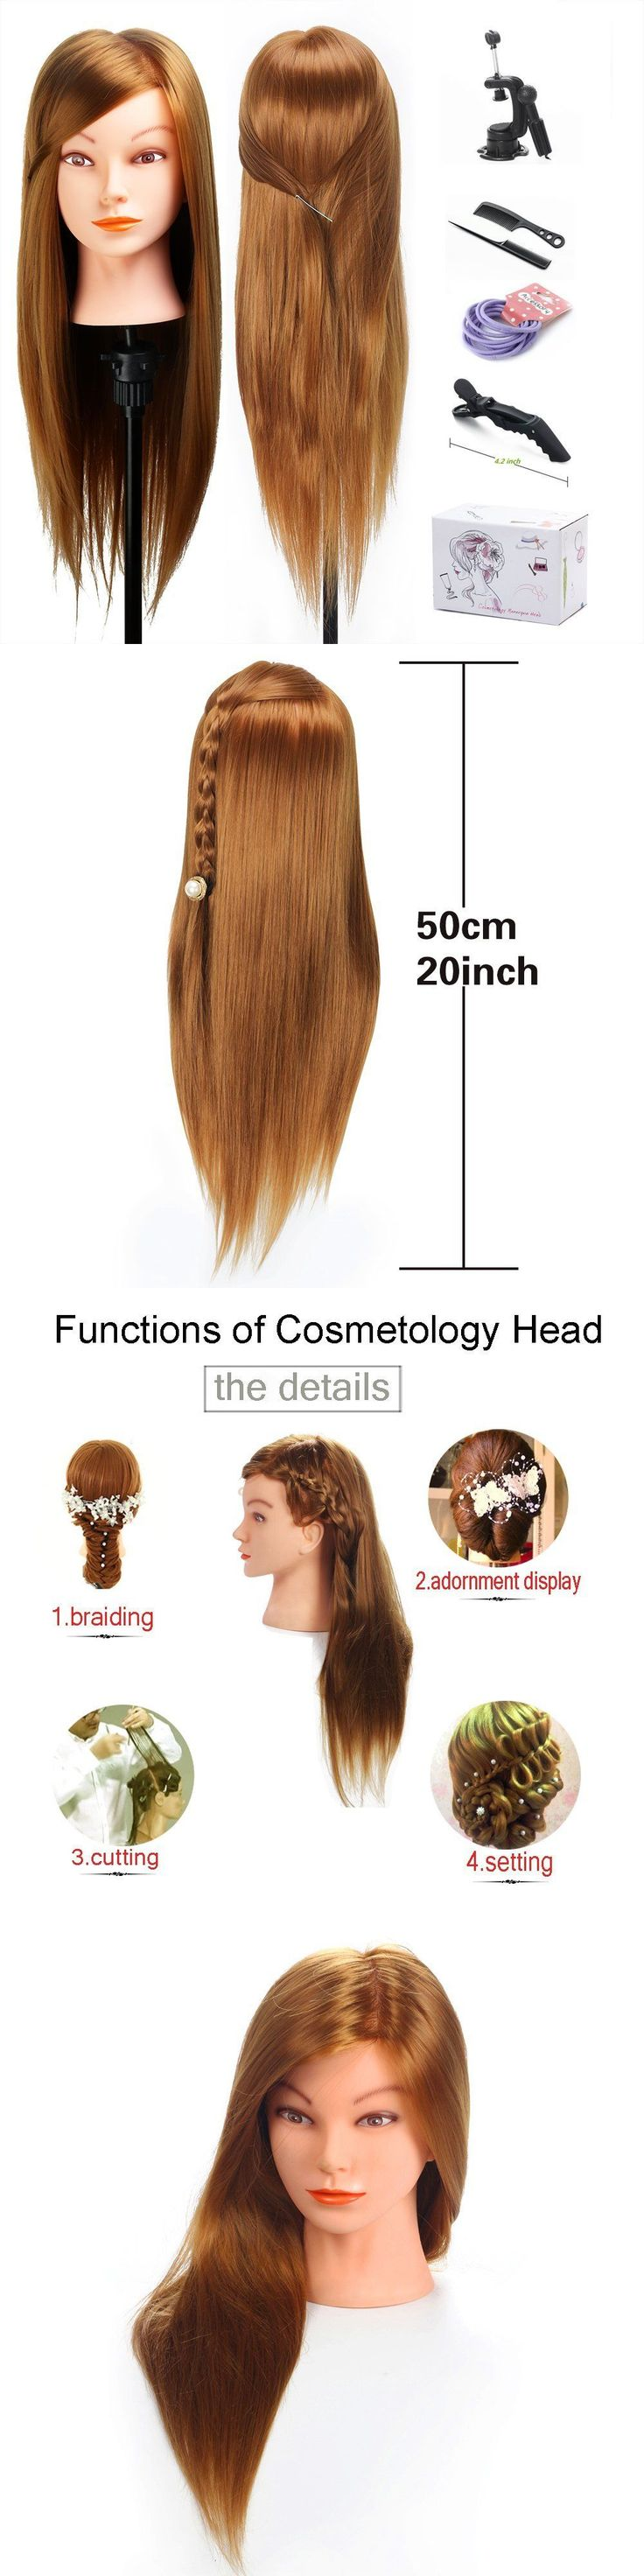 Other Salon and Spa Equipment: Mysweety Mannequin Head 20 Inch Long Hair Styler Cosmetology Manikin Training BUY IT NOW ONLY: $33.62